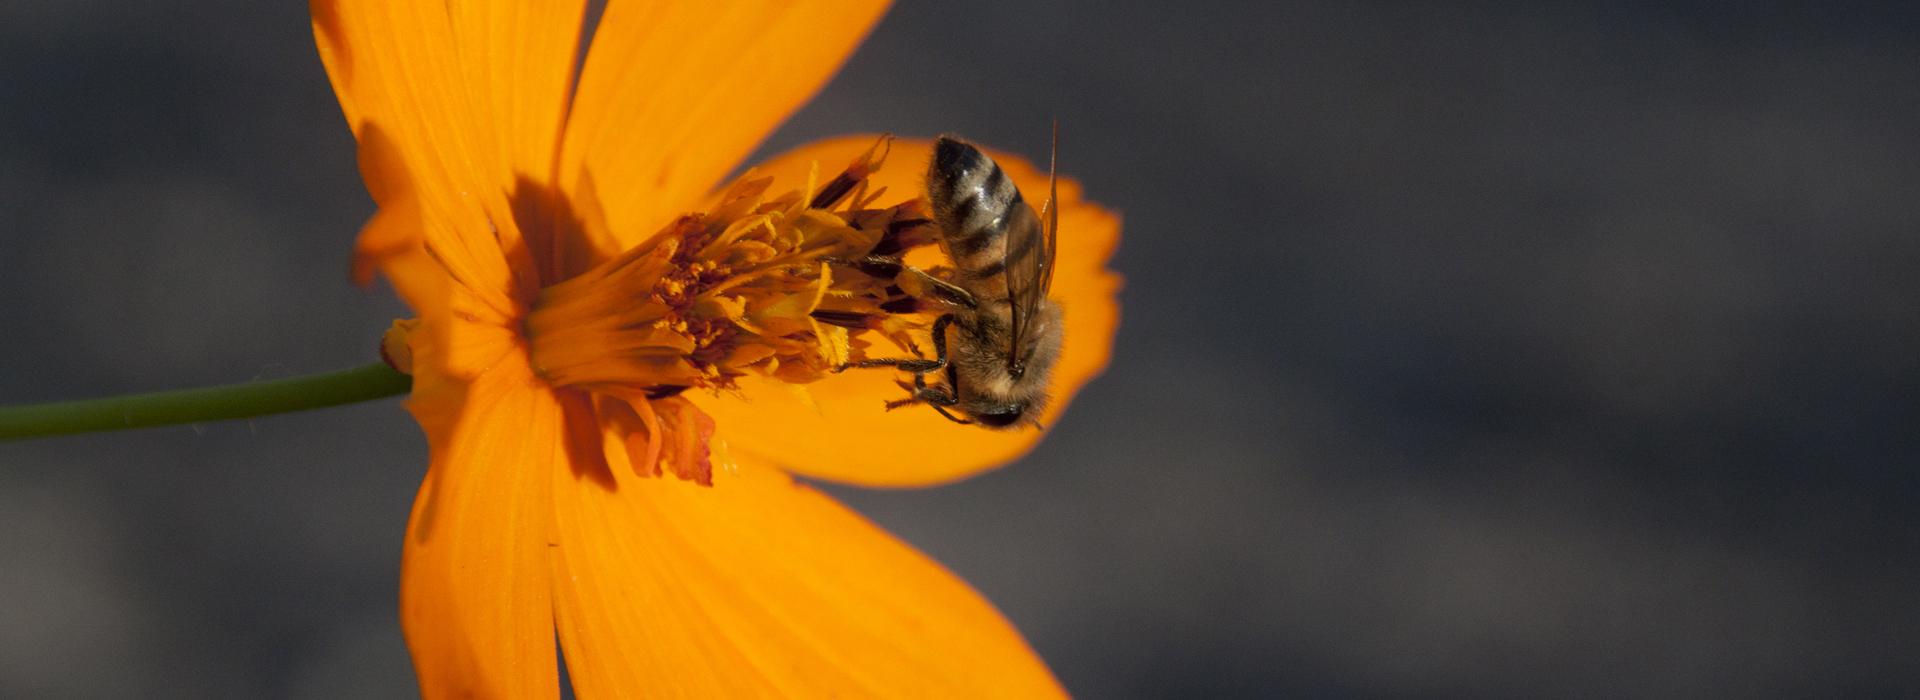 Bee collects pollen from a bright orange flower